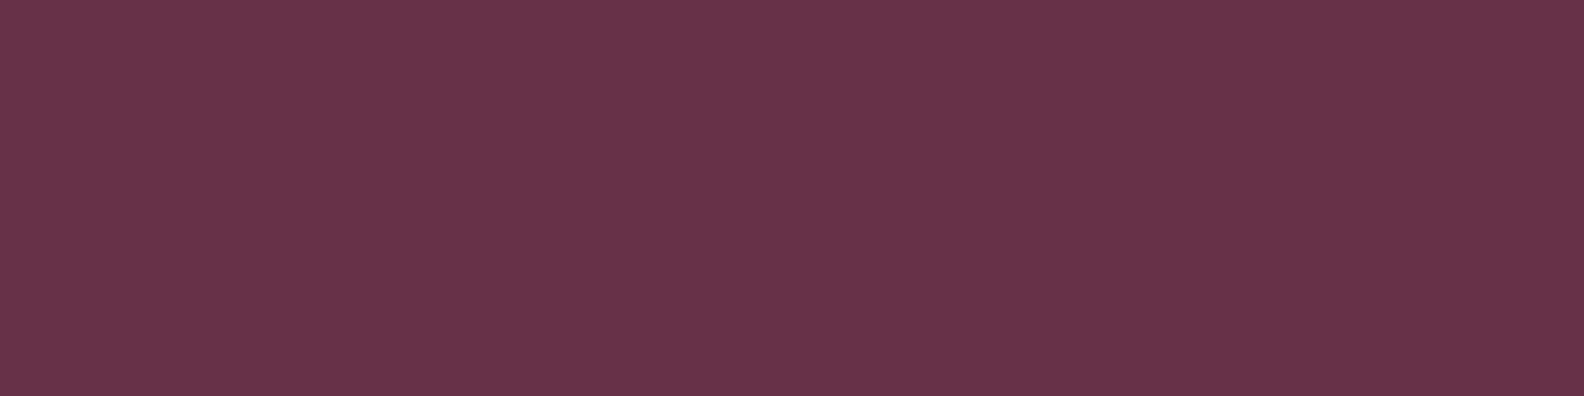 1584x396 Old Mauve Solid Color Background